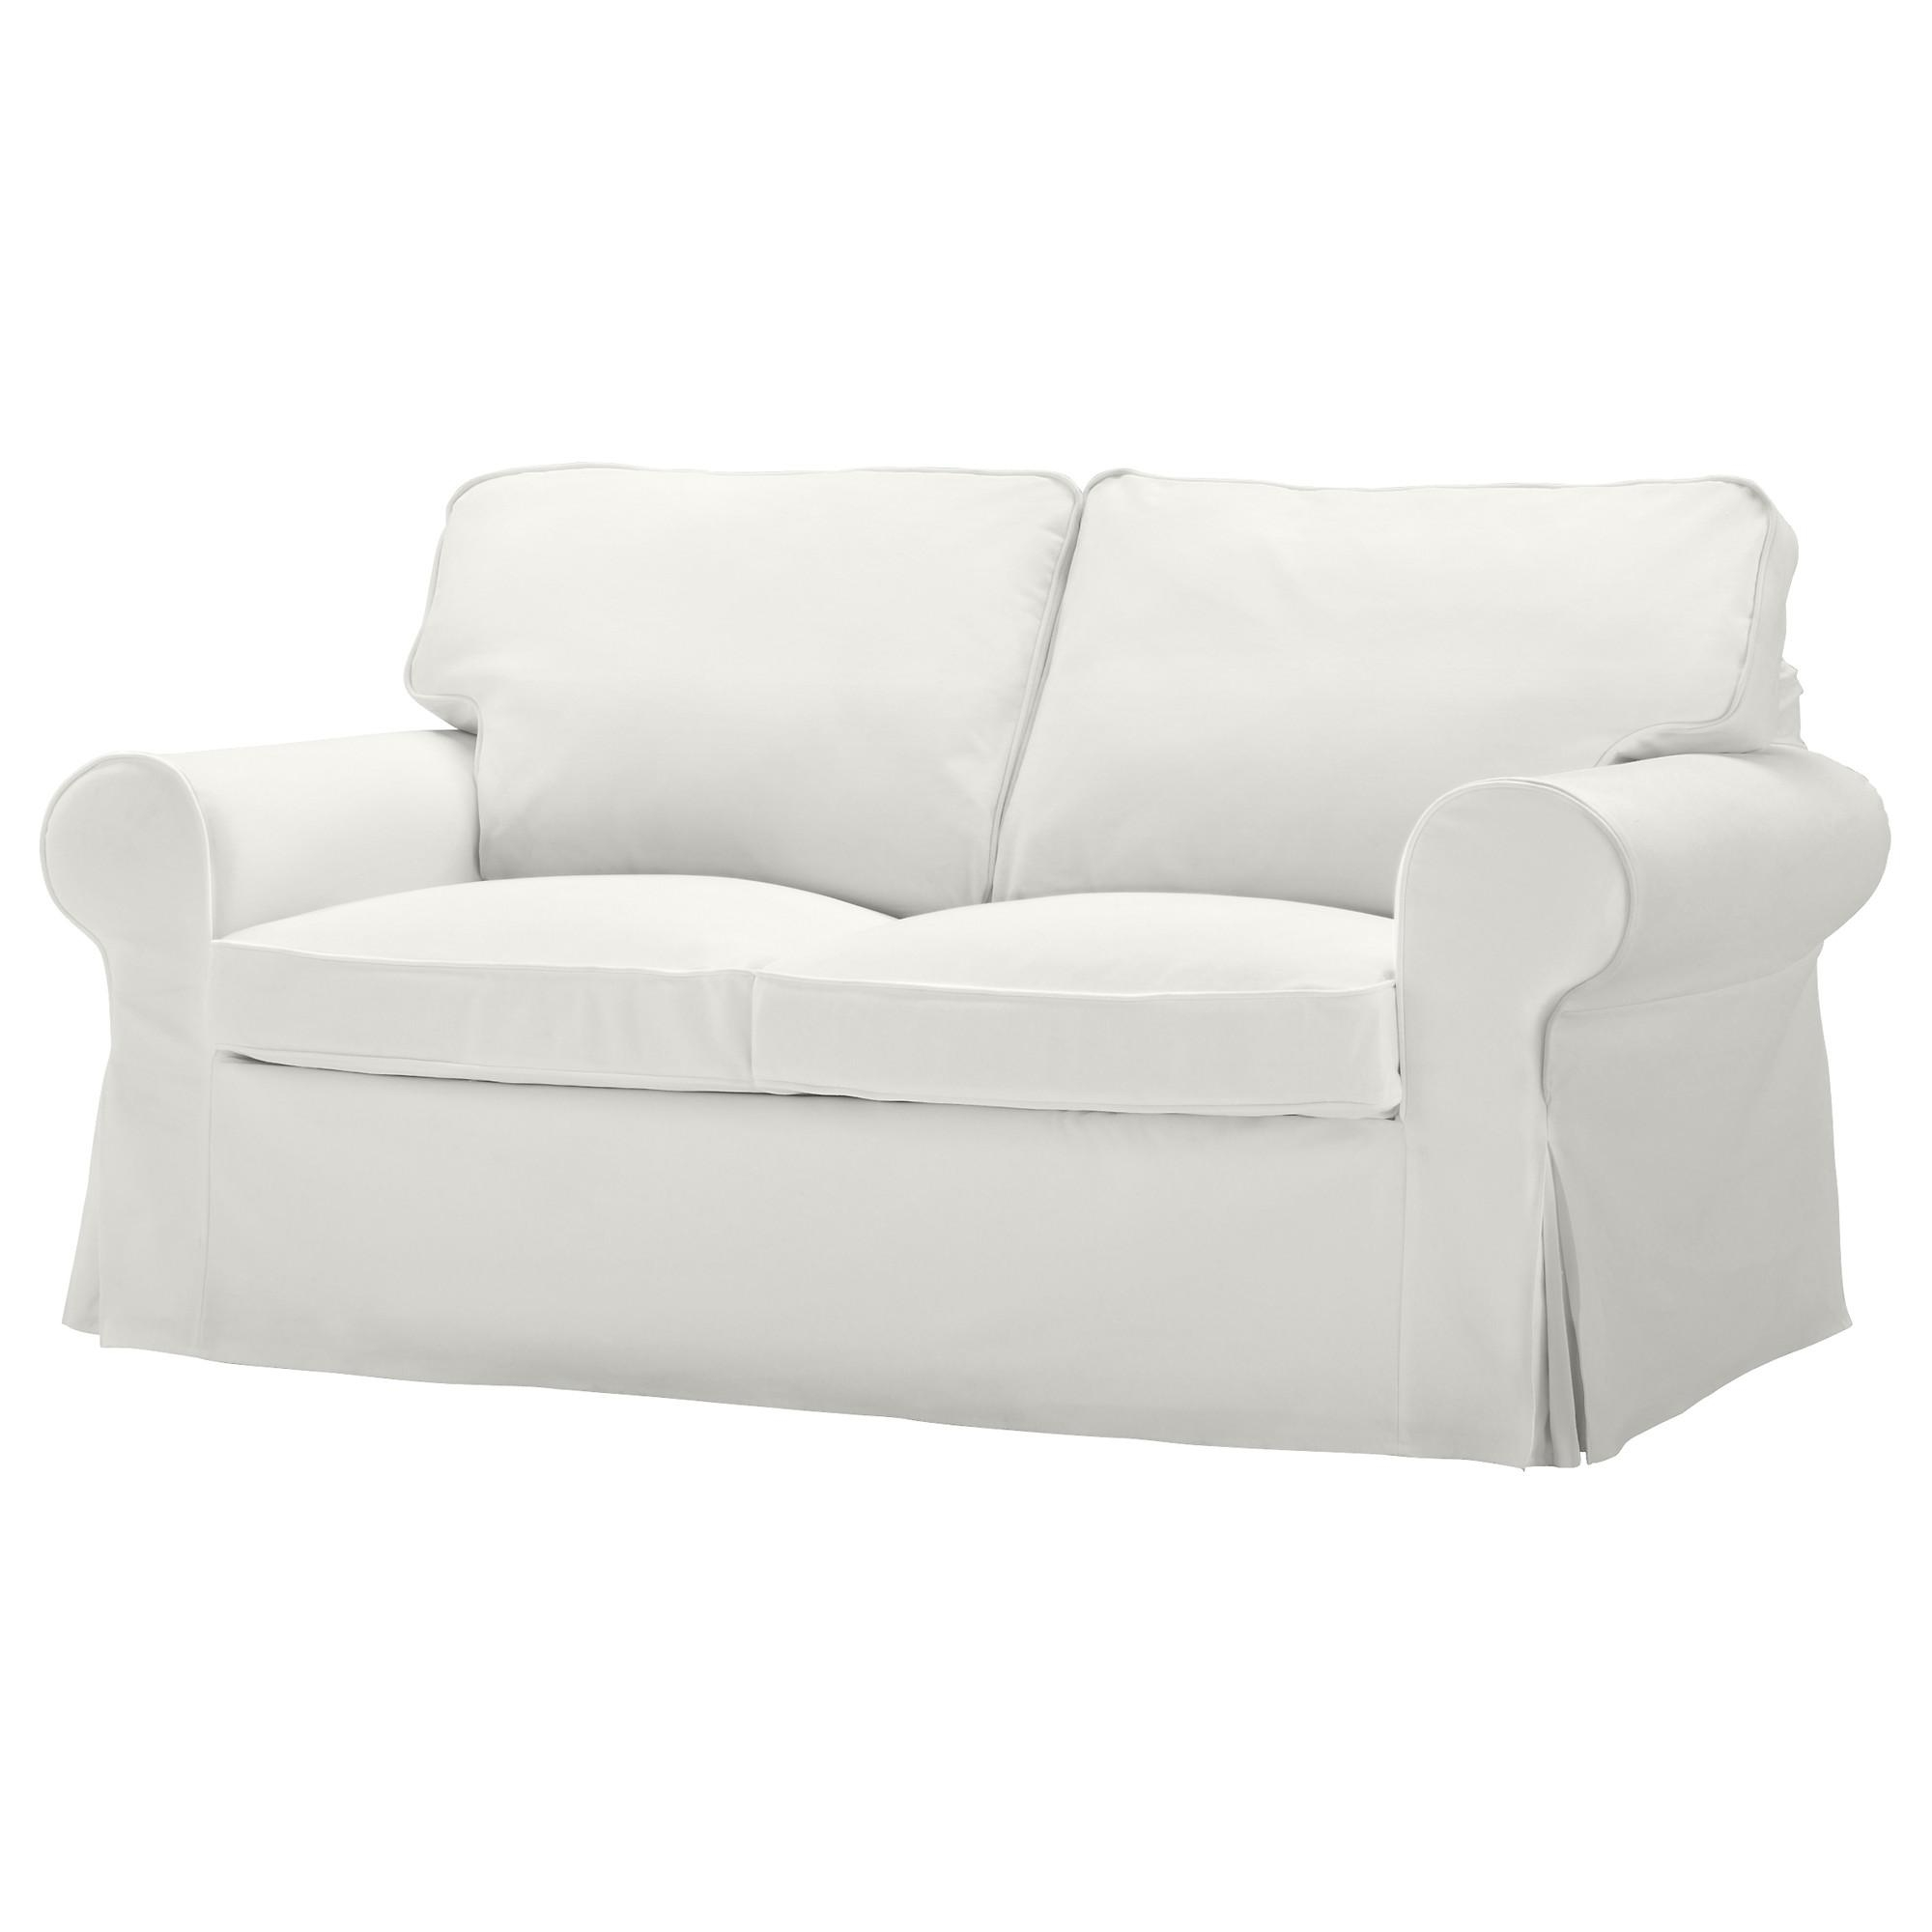 Ikea Sofa 2 20 43 Choices Of Ikea Two Seater Sofas Sofa Ideas